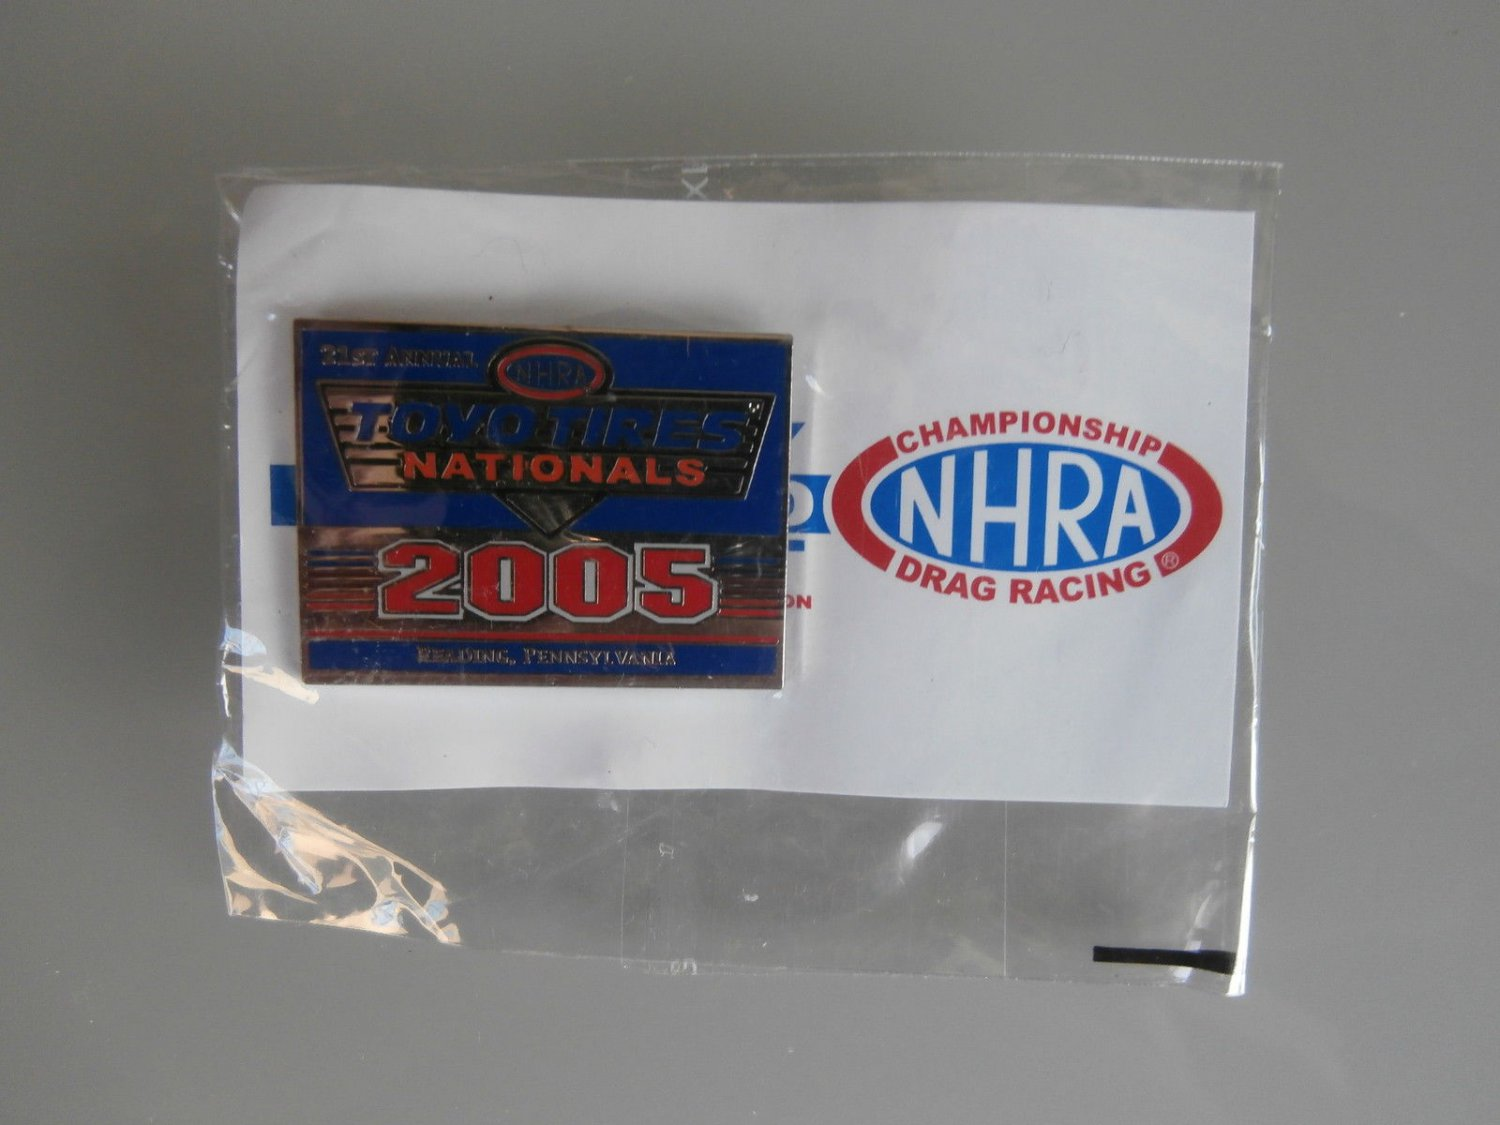 2005 NHRA Event Pin Reading